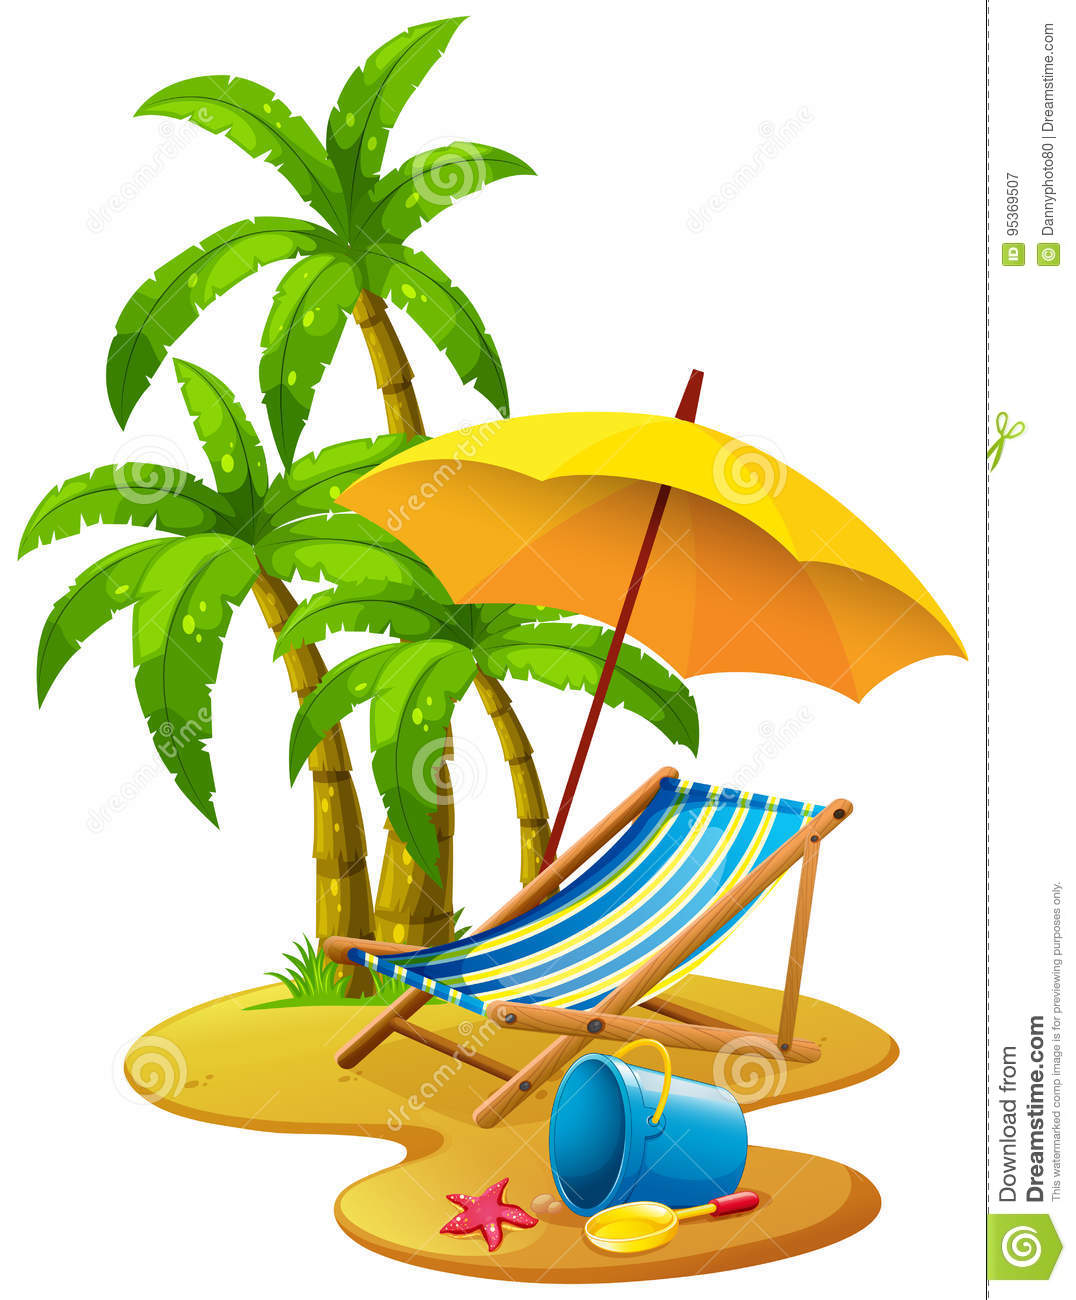 Beach Scene With Chair And Umbrella Stock Vector.